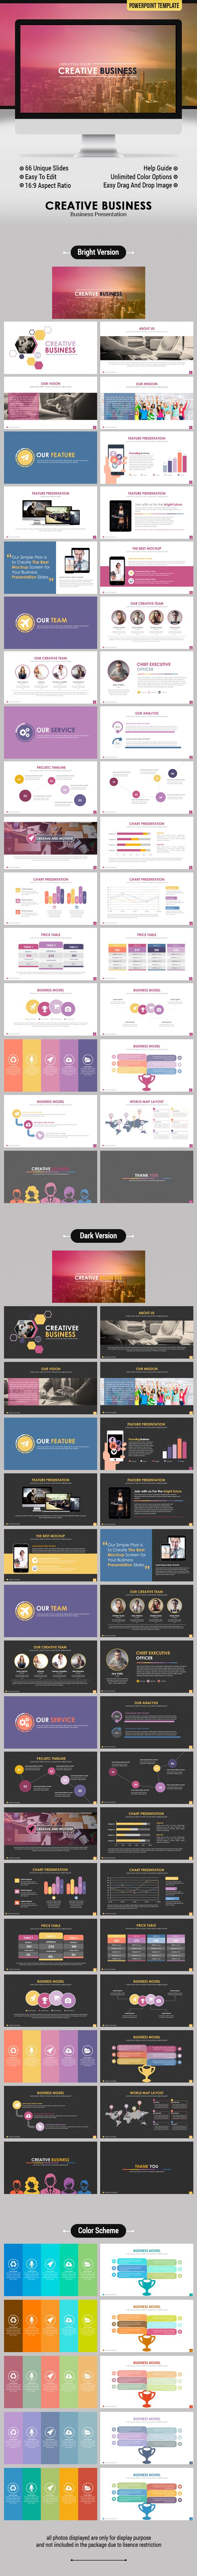 Creative Business PowerPoint Template. Download here: http://graphicriver.net/item/creative-business-powerpoint-template/15823712?ref=ksioks